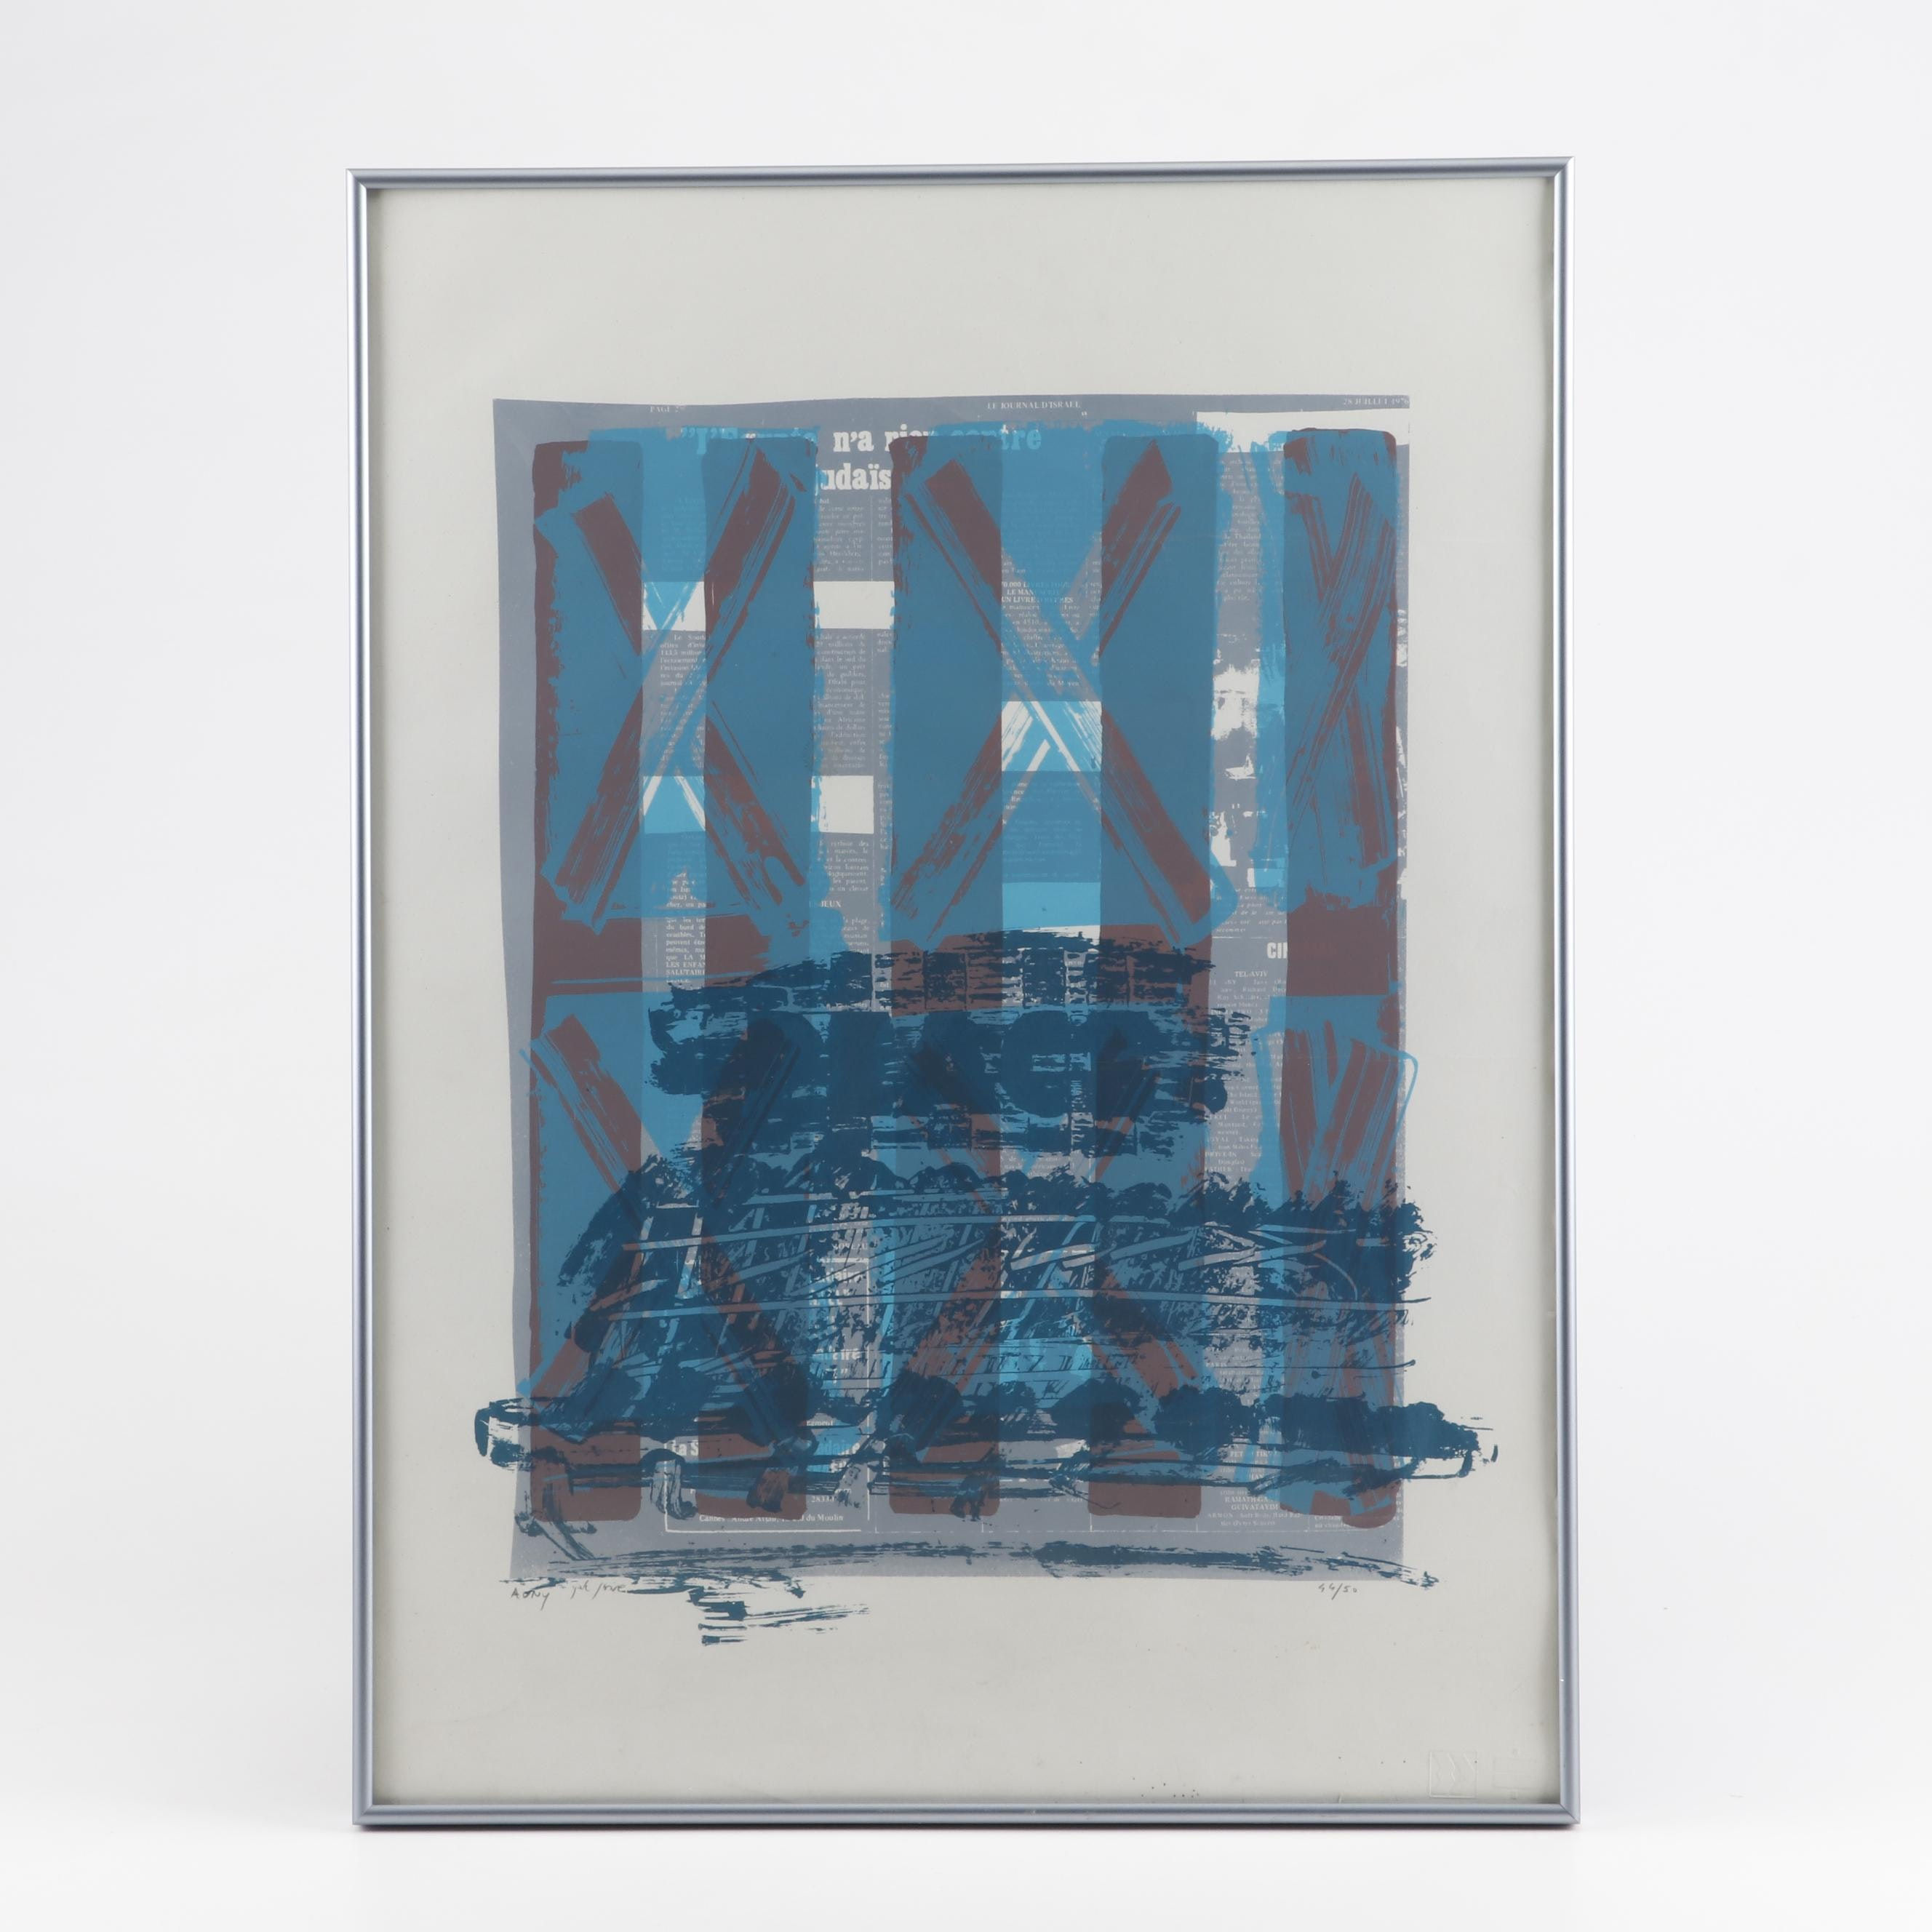 Limited Edition Serigraph Poster